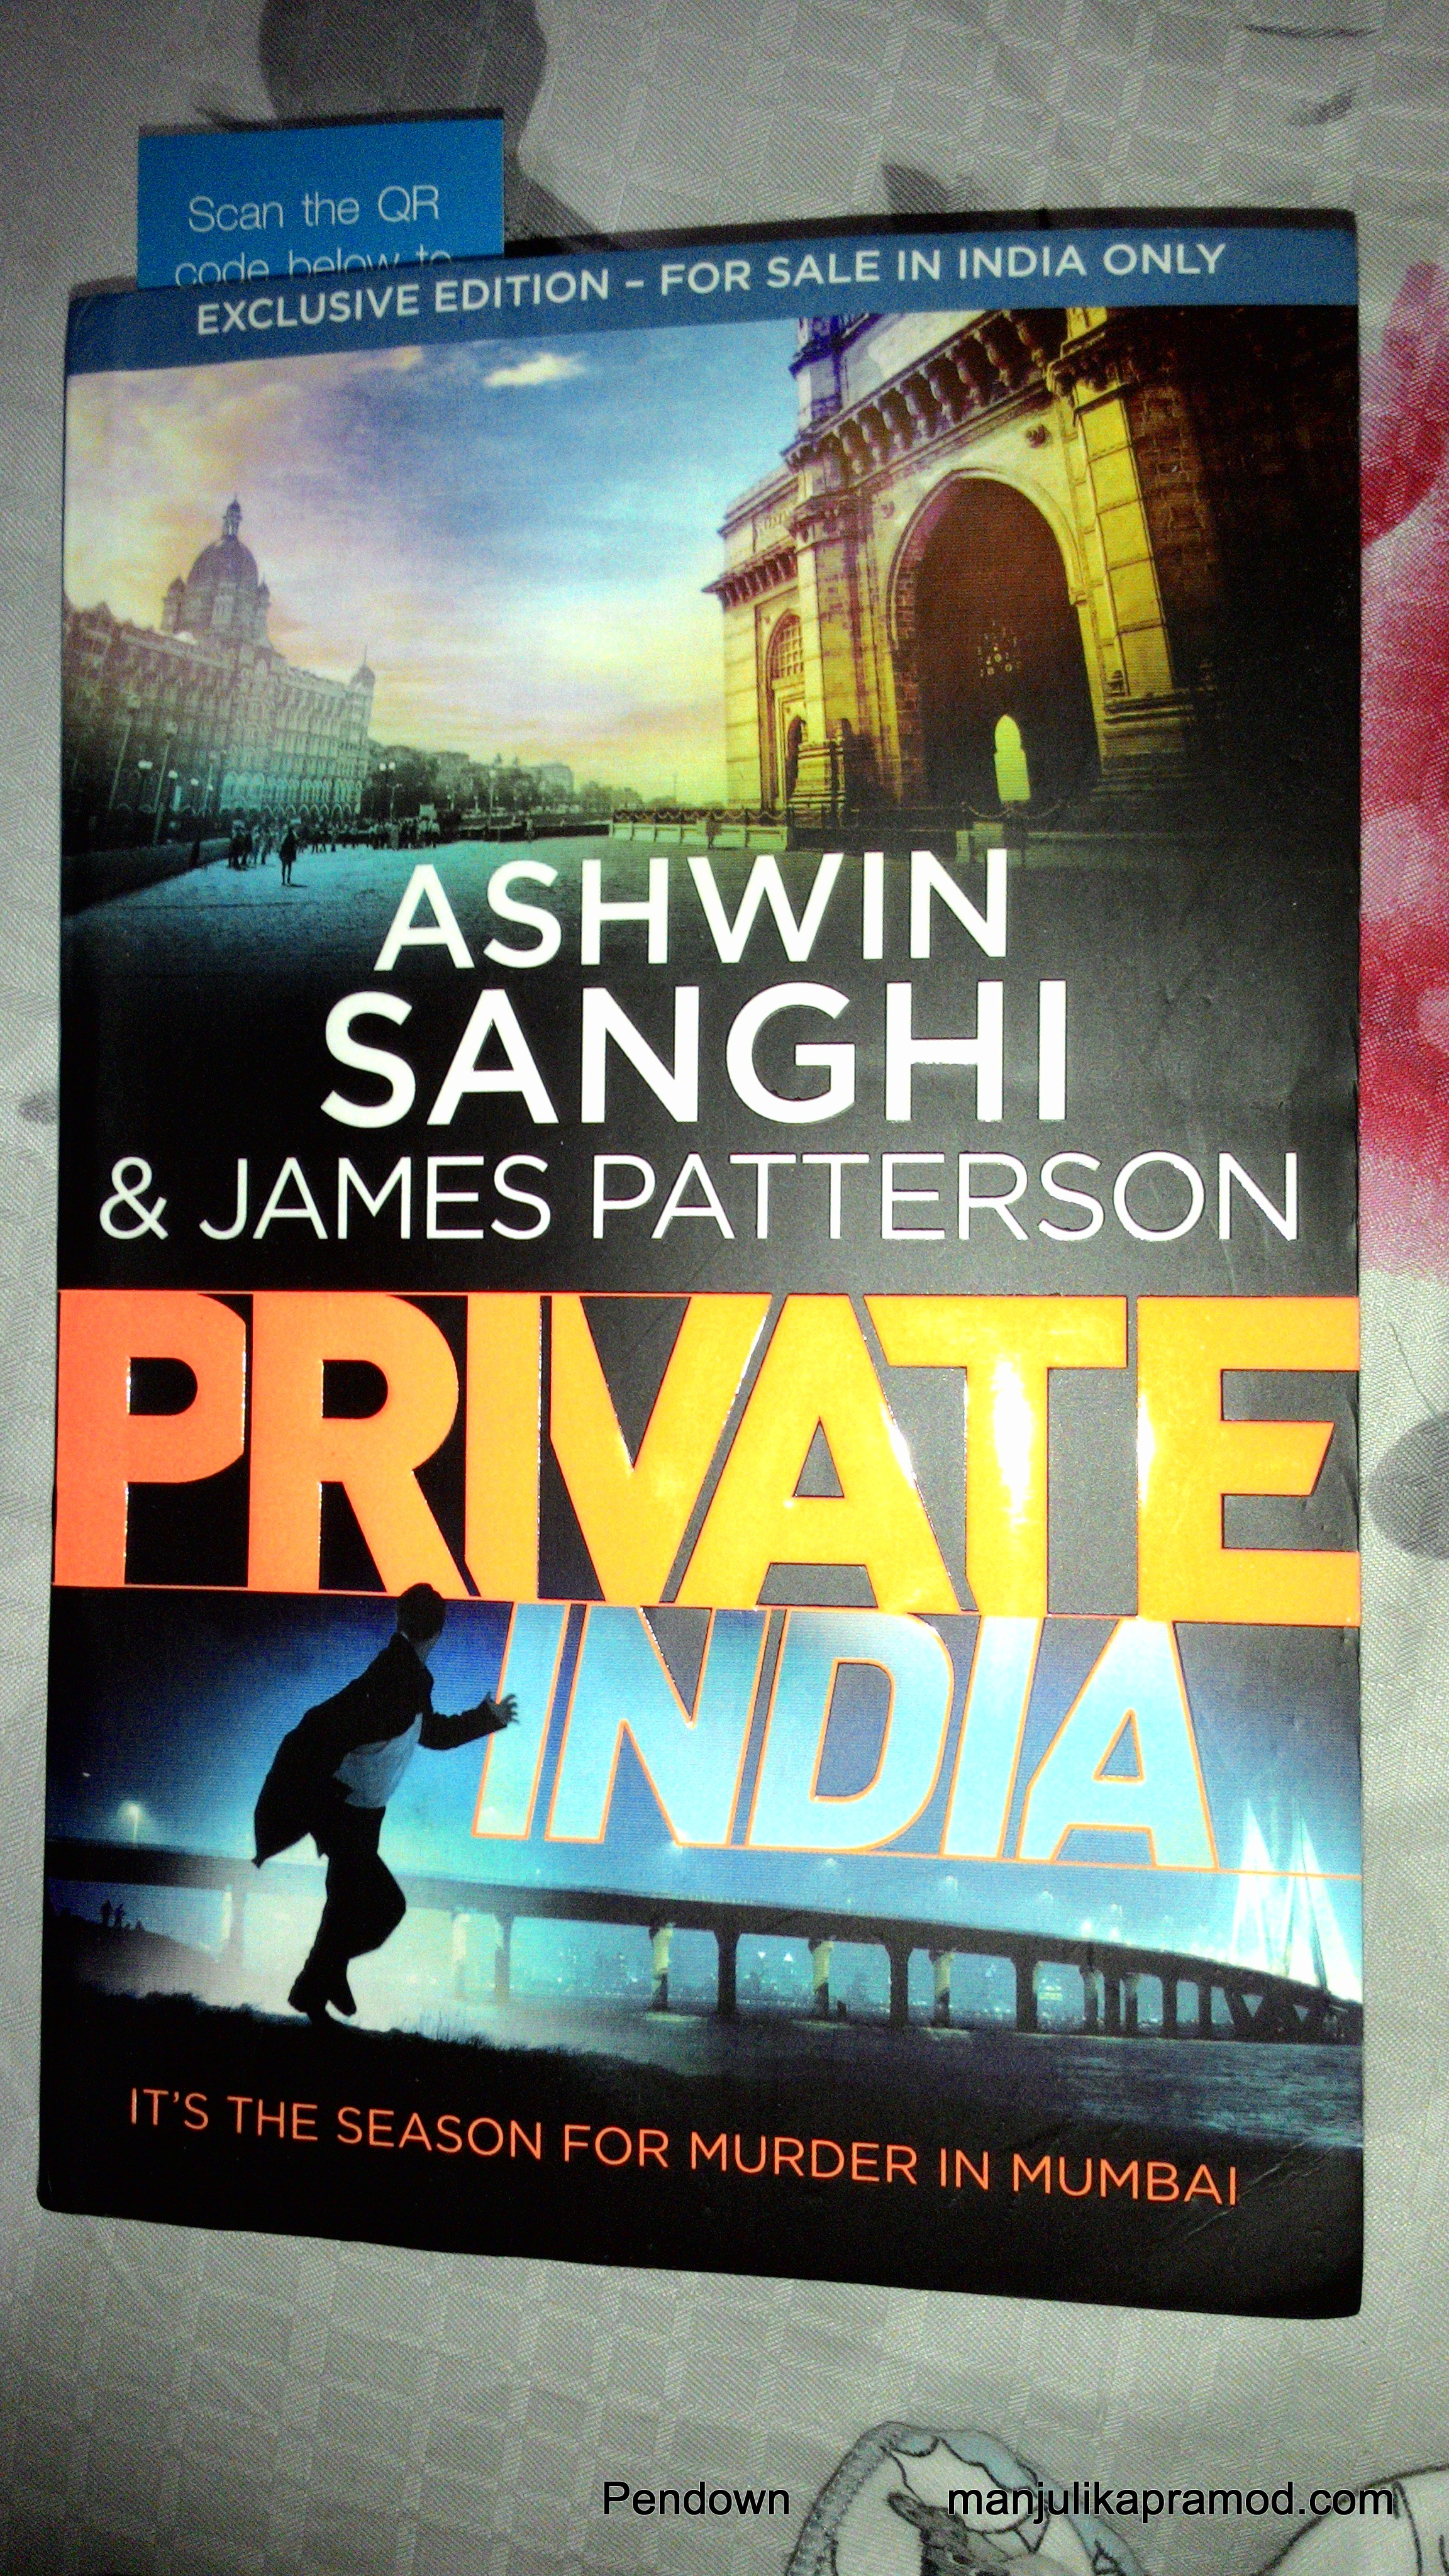 Ashwin Sanghi, James Patterson, Thriller, Private India